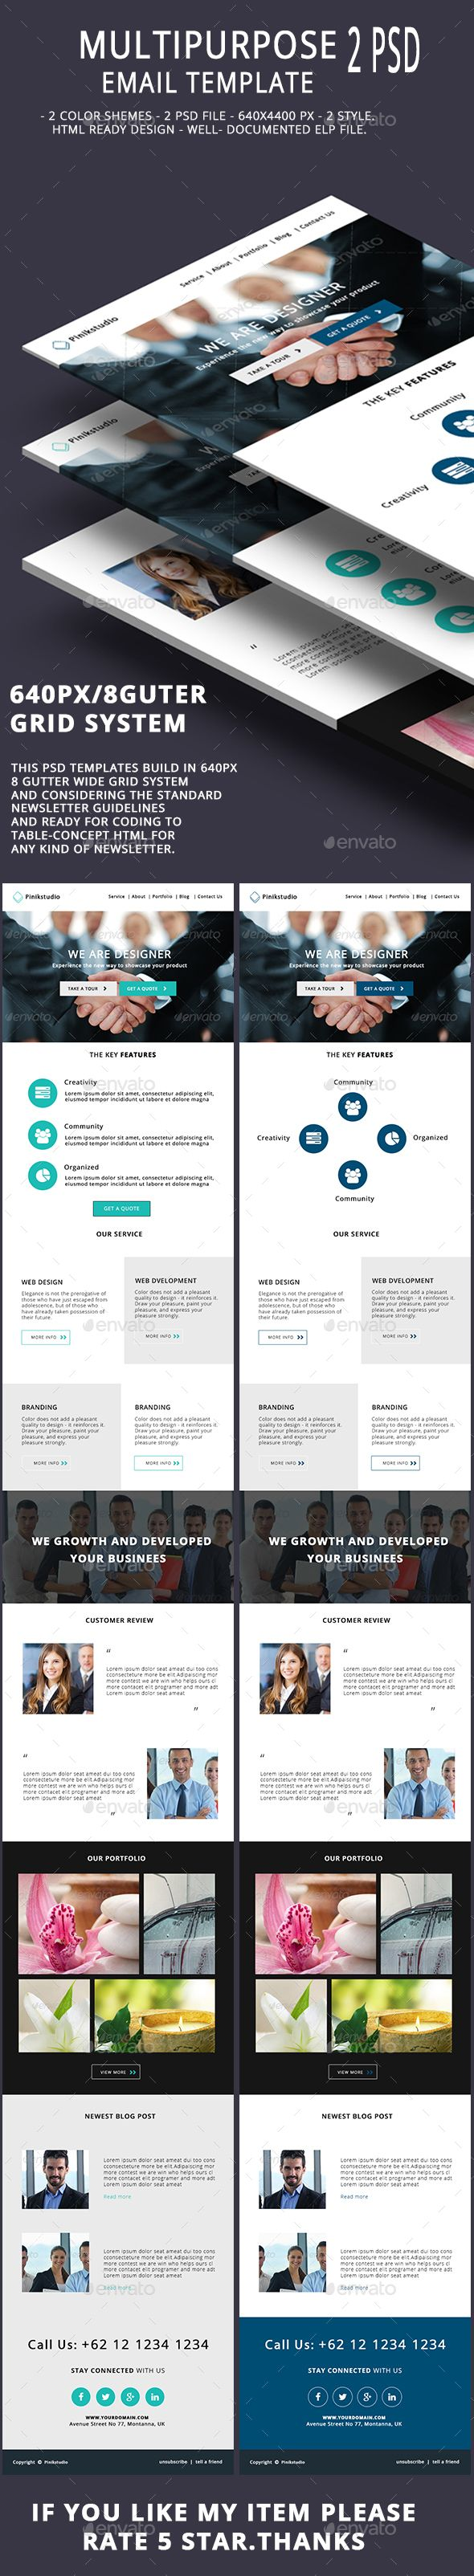 email infographic template - Kubre.euforic.co